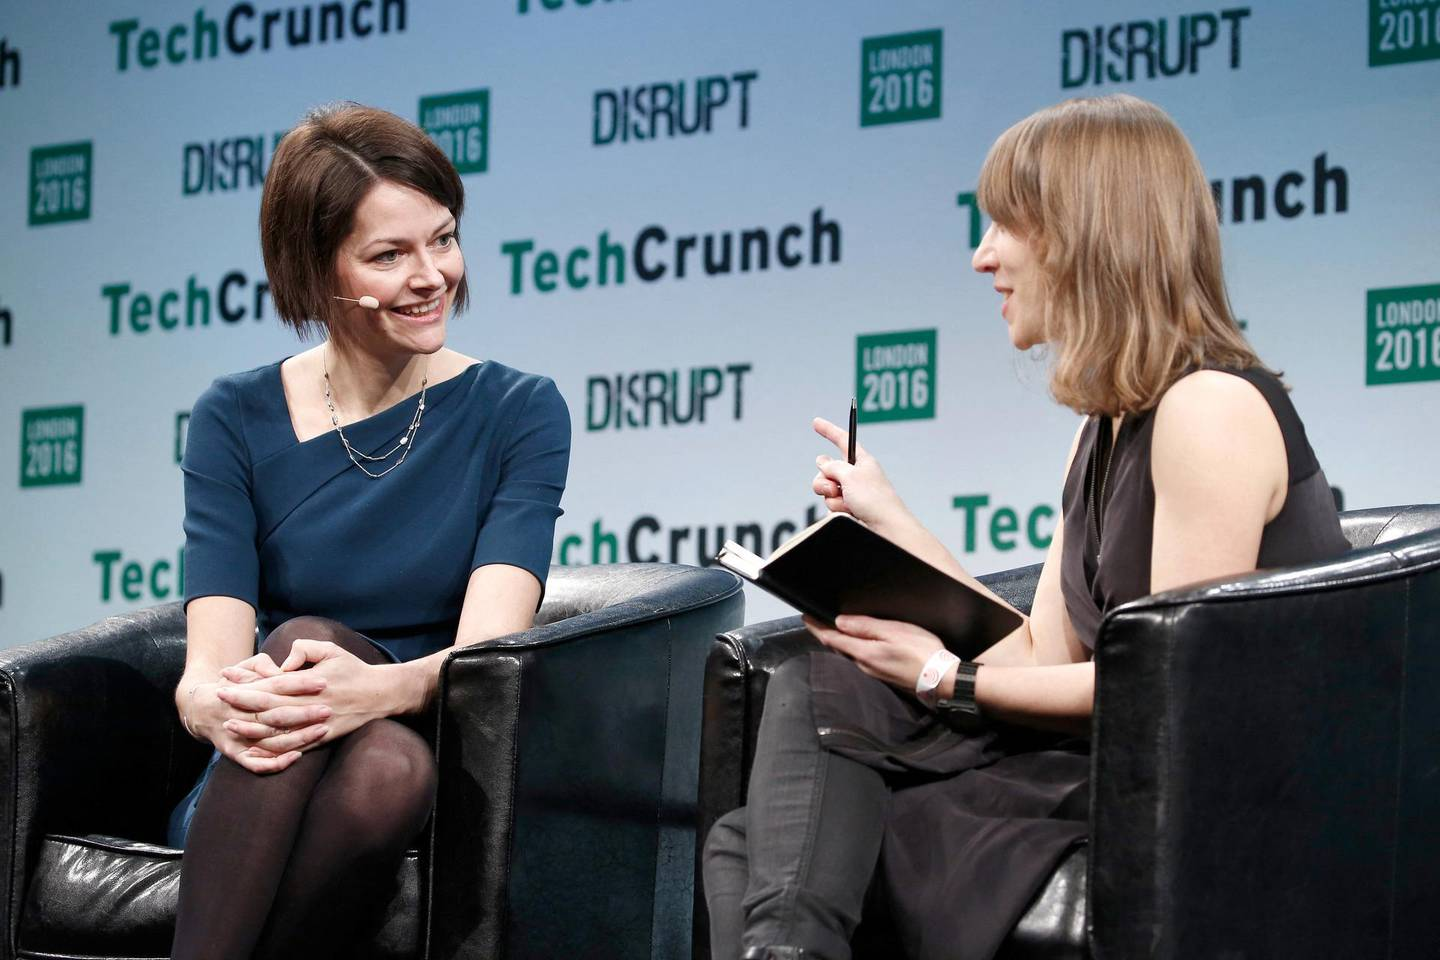 LONDON, ENGLAND - DECEMBER 05: Co-Founder and CEO of Darktrace Poppy Gustafsson (L) attends a Q&A with TechCrunch Moderator Natasha Lomas (R) during day 1 of TechCrunch Disrupt London at the Copper Box on December 5, 2016 in London, England.   John Phillips/Getty Images for TechCrunch/AFP (Photo by John Phillips / GETTY IMAGES NORTH AMERICA / Getty Images via AFP)